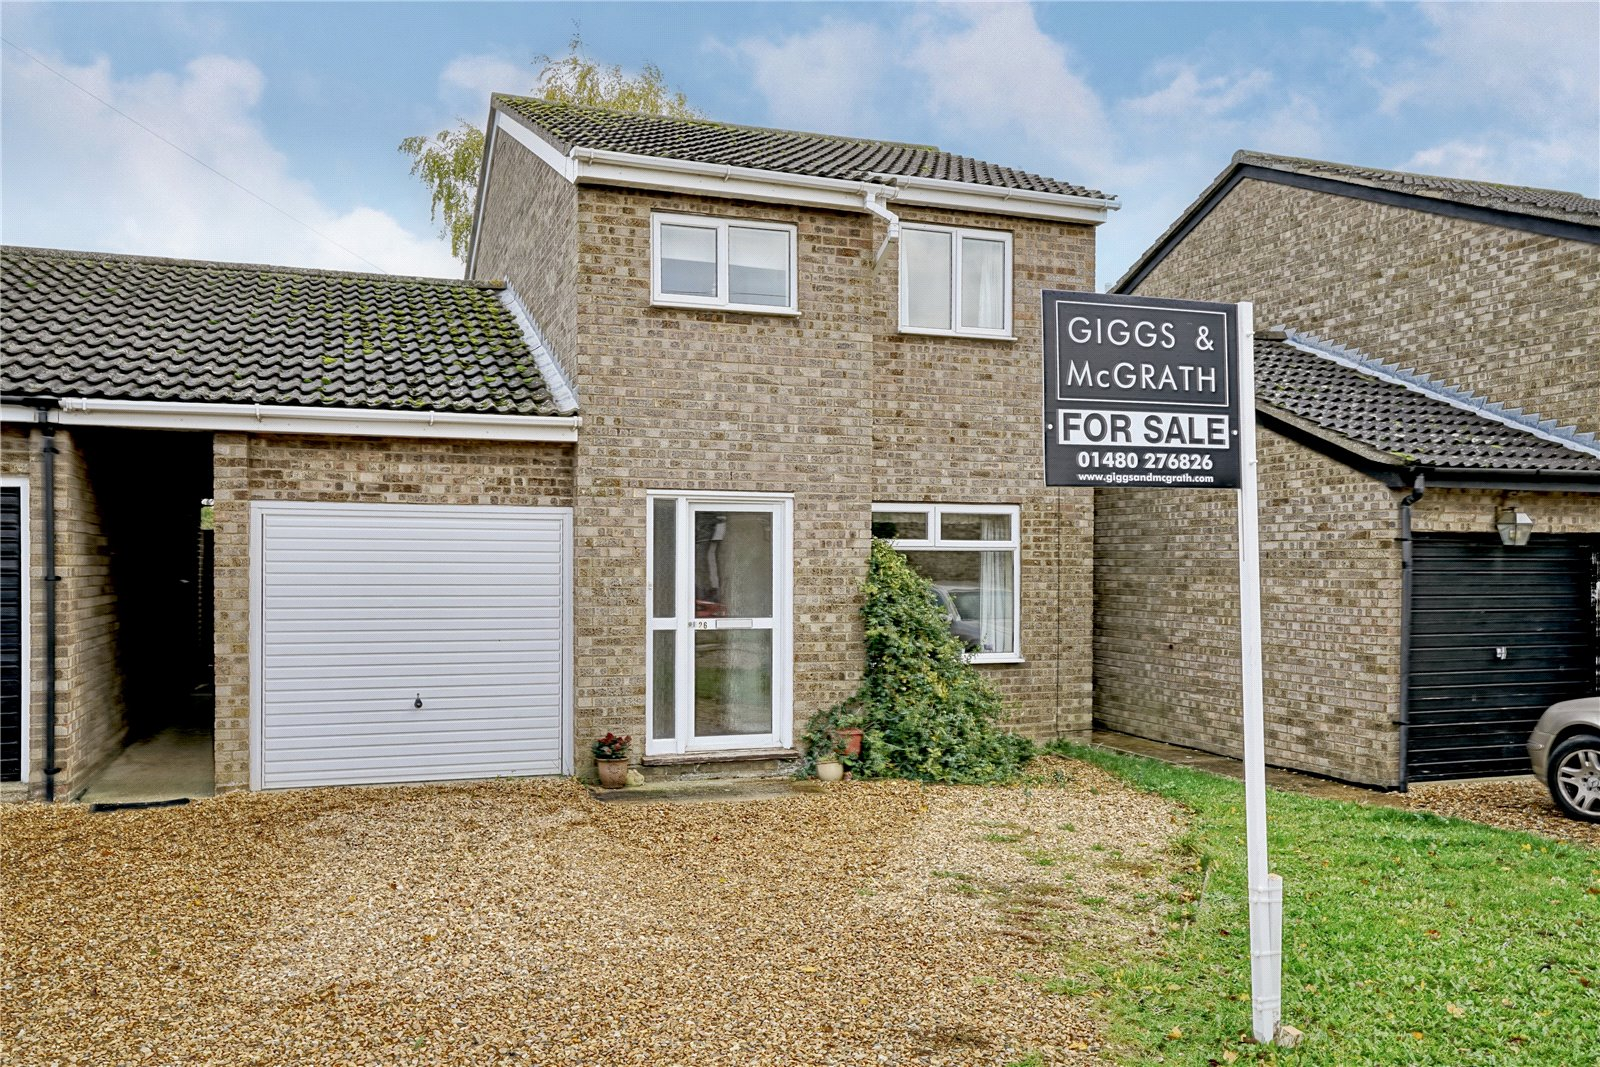 3 bed house for sale in Earith, PE28 3QU  - Property Image 1